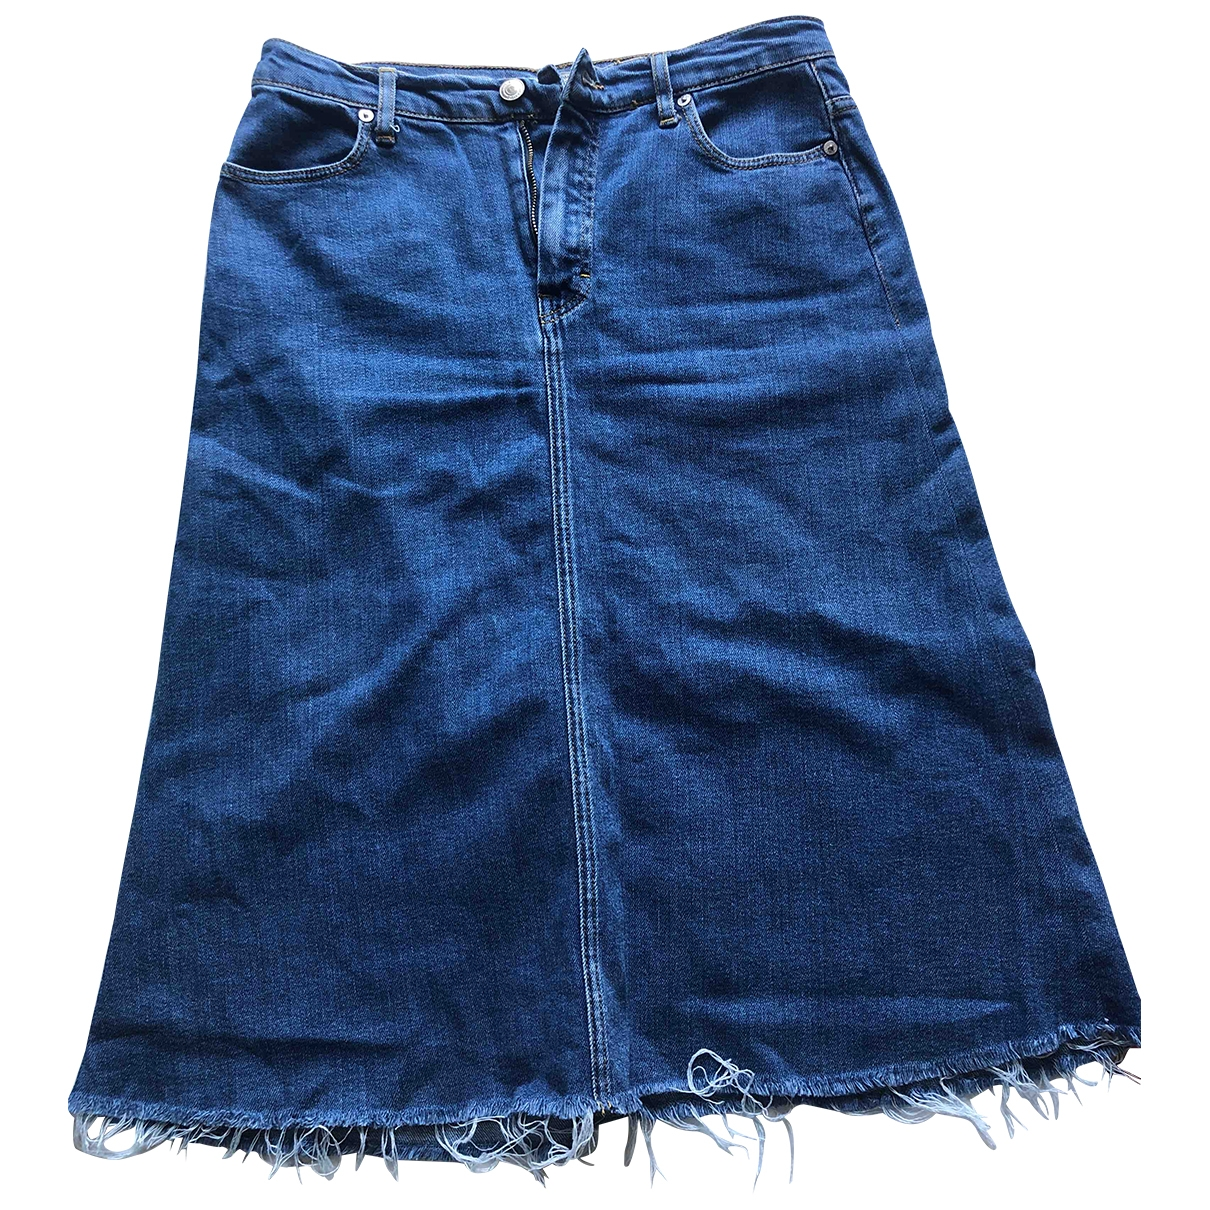 Zara \N Rocke in  Blau Denim - Jeans